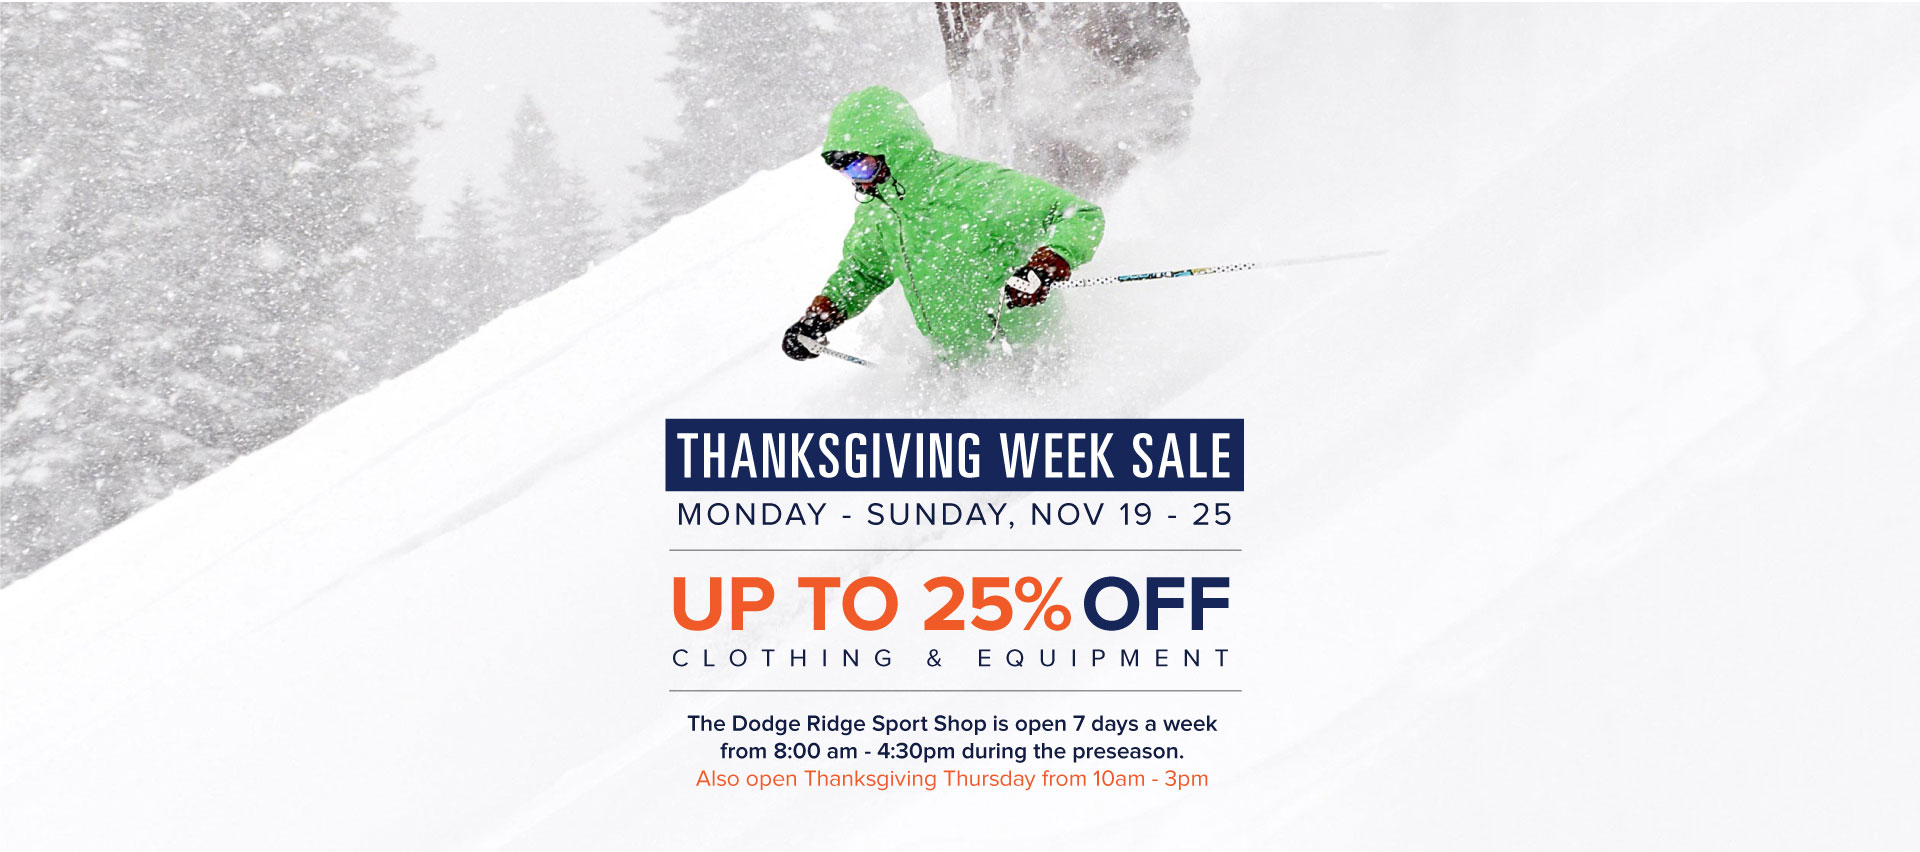 Dodge Ridge Thanksgiving Week Sale - November 19 - 25